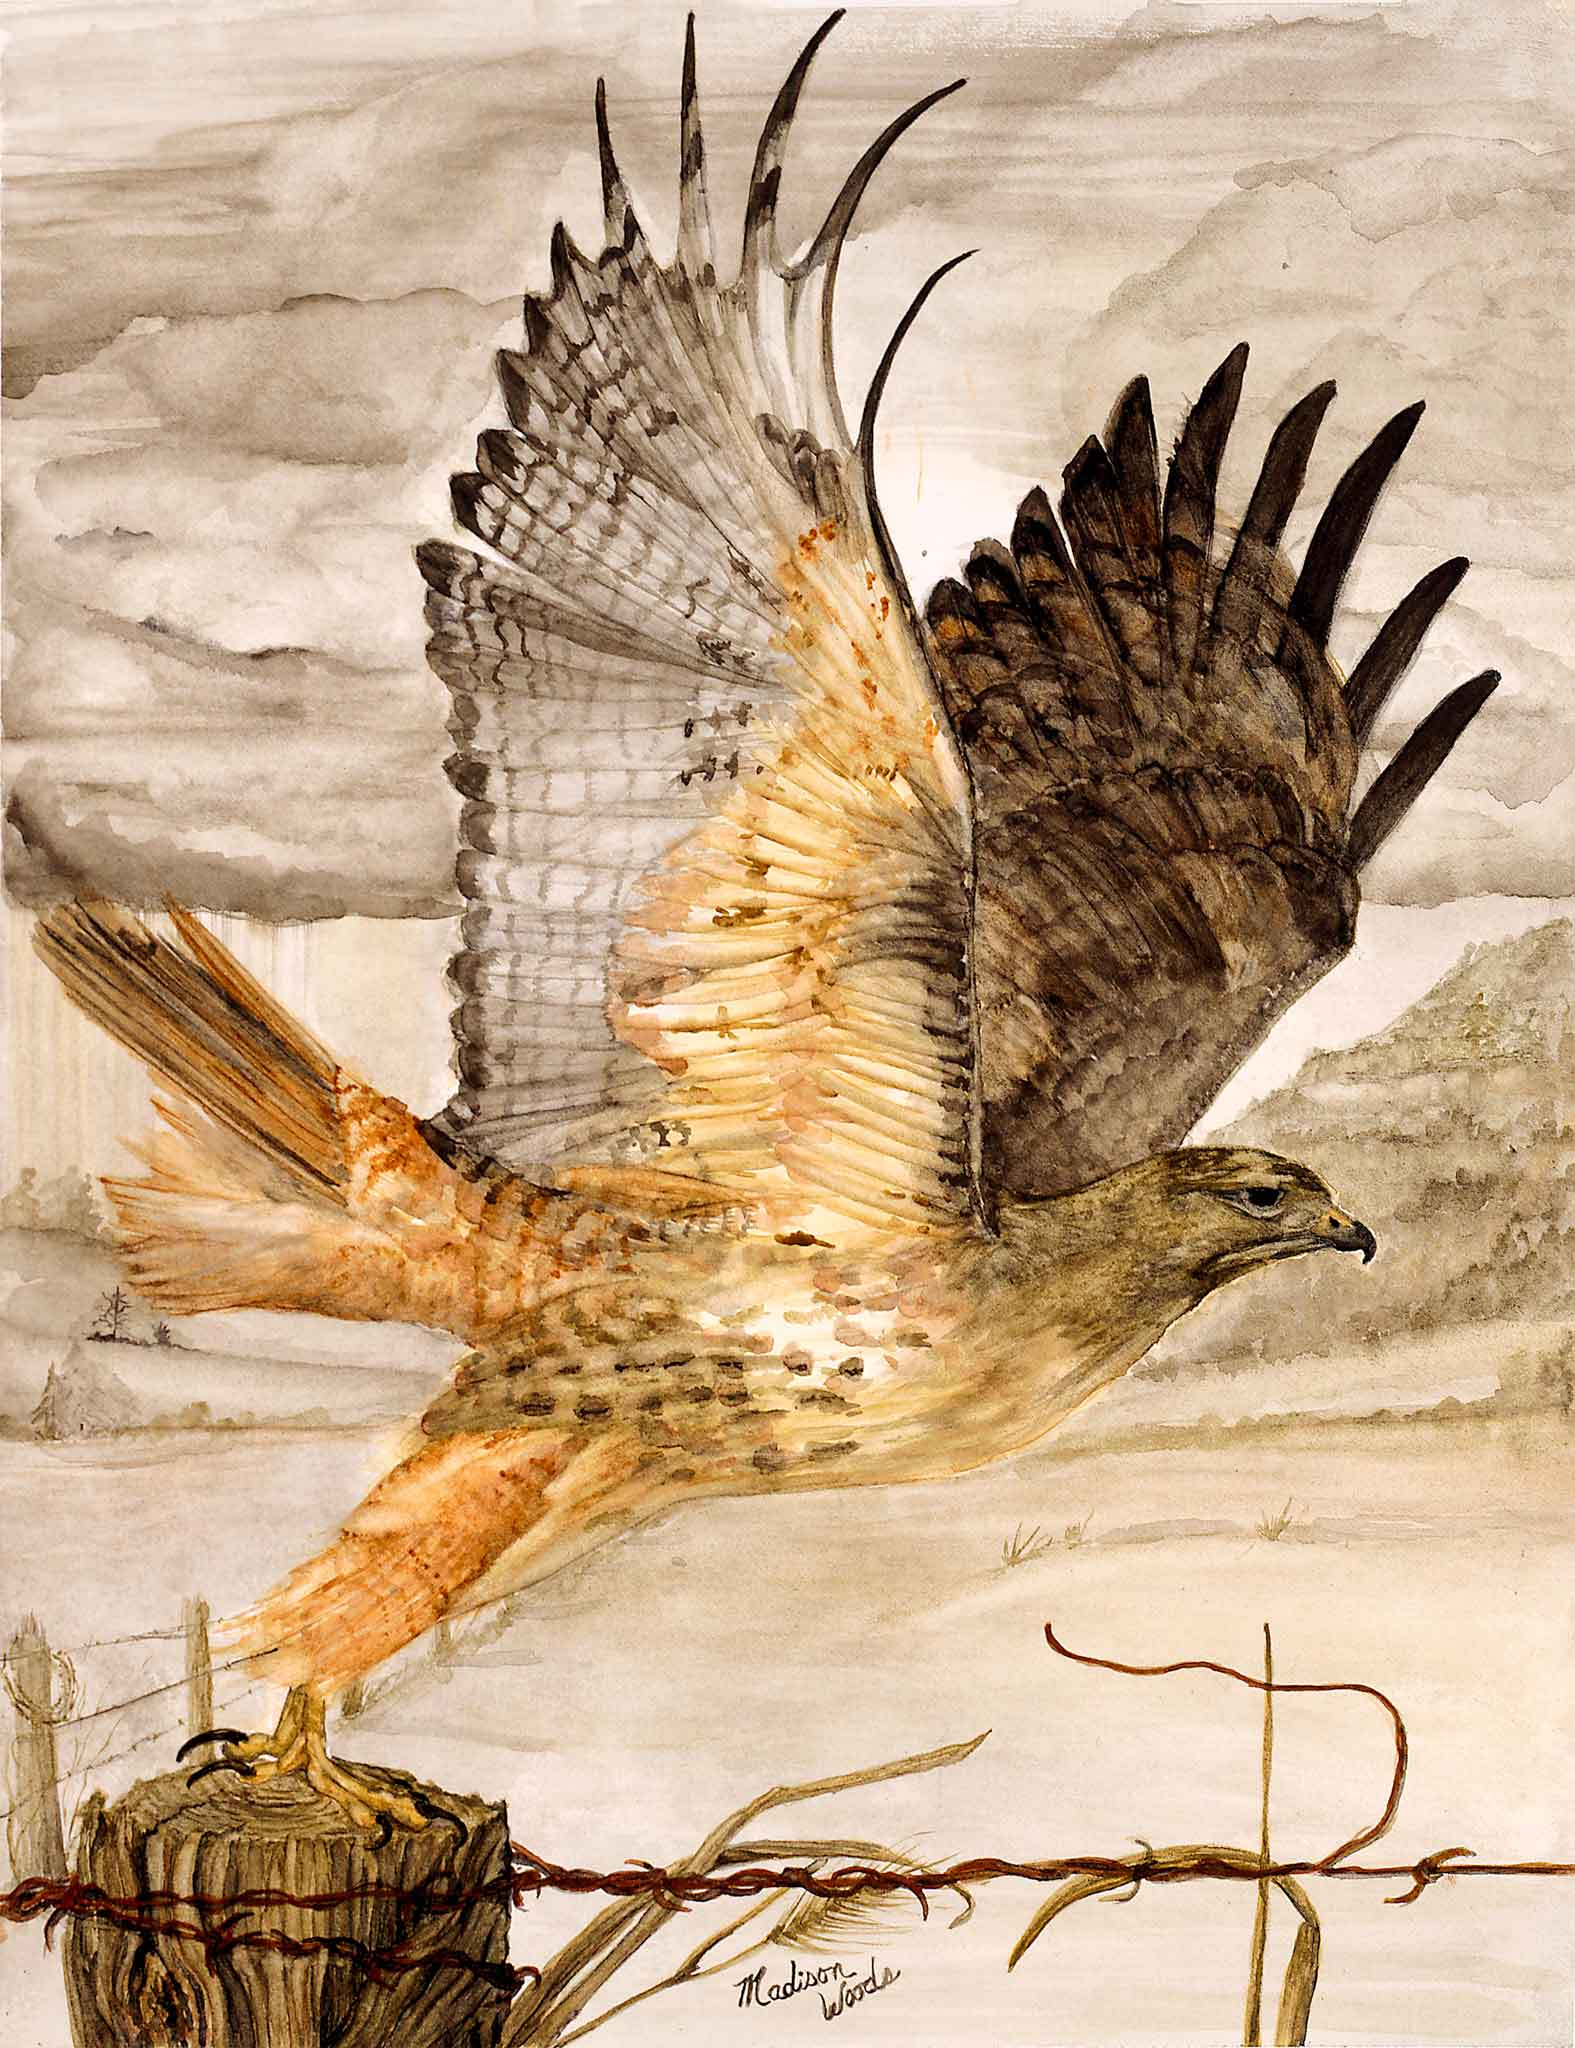 An 11 x 14 mounted red-tailed hawk print from Wild Ozark is ready to hang, UV resistant, and requires no frame or glazing.